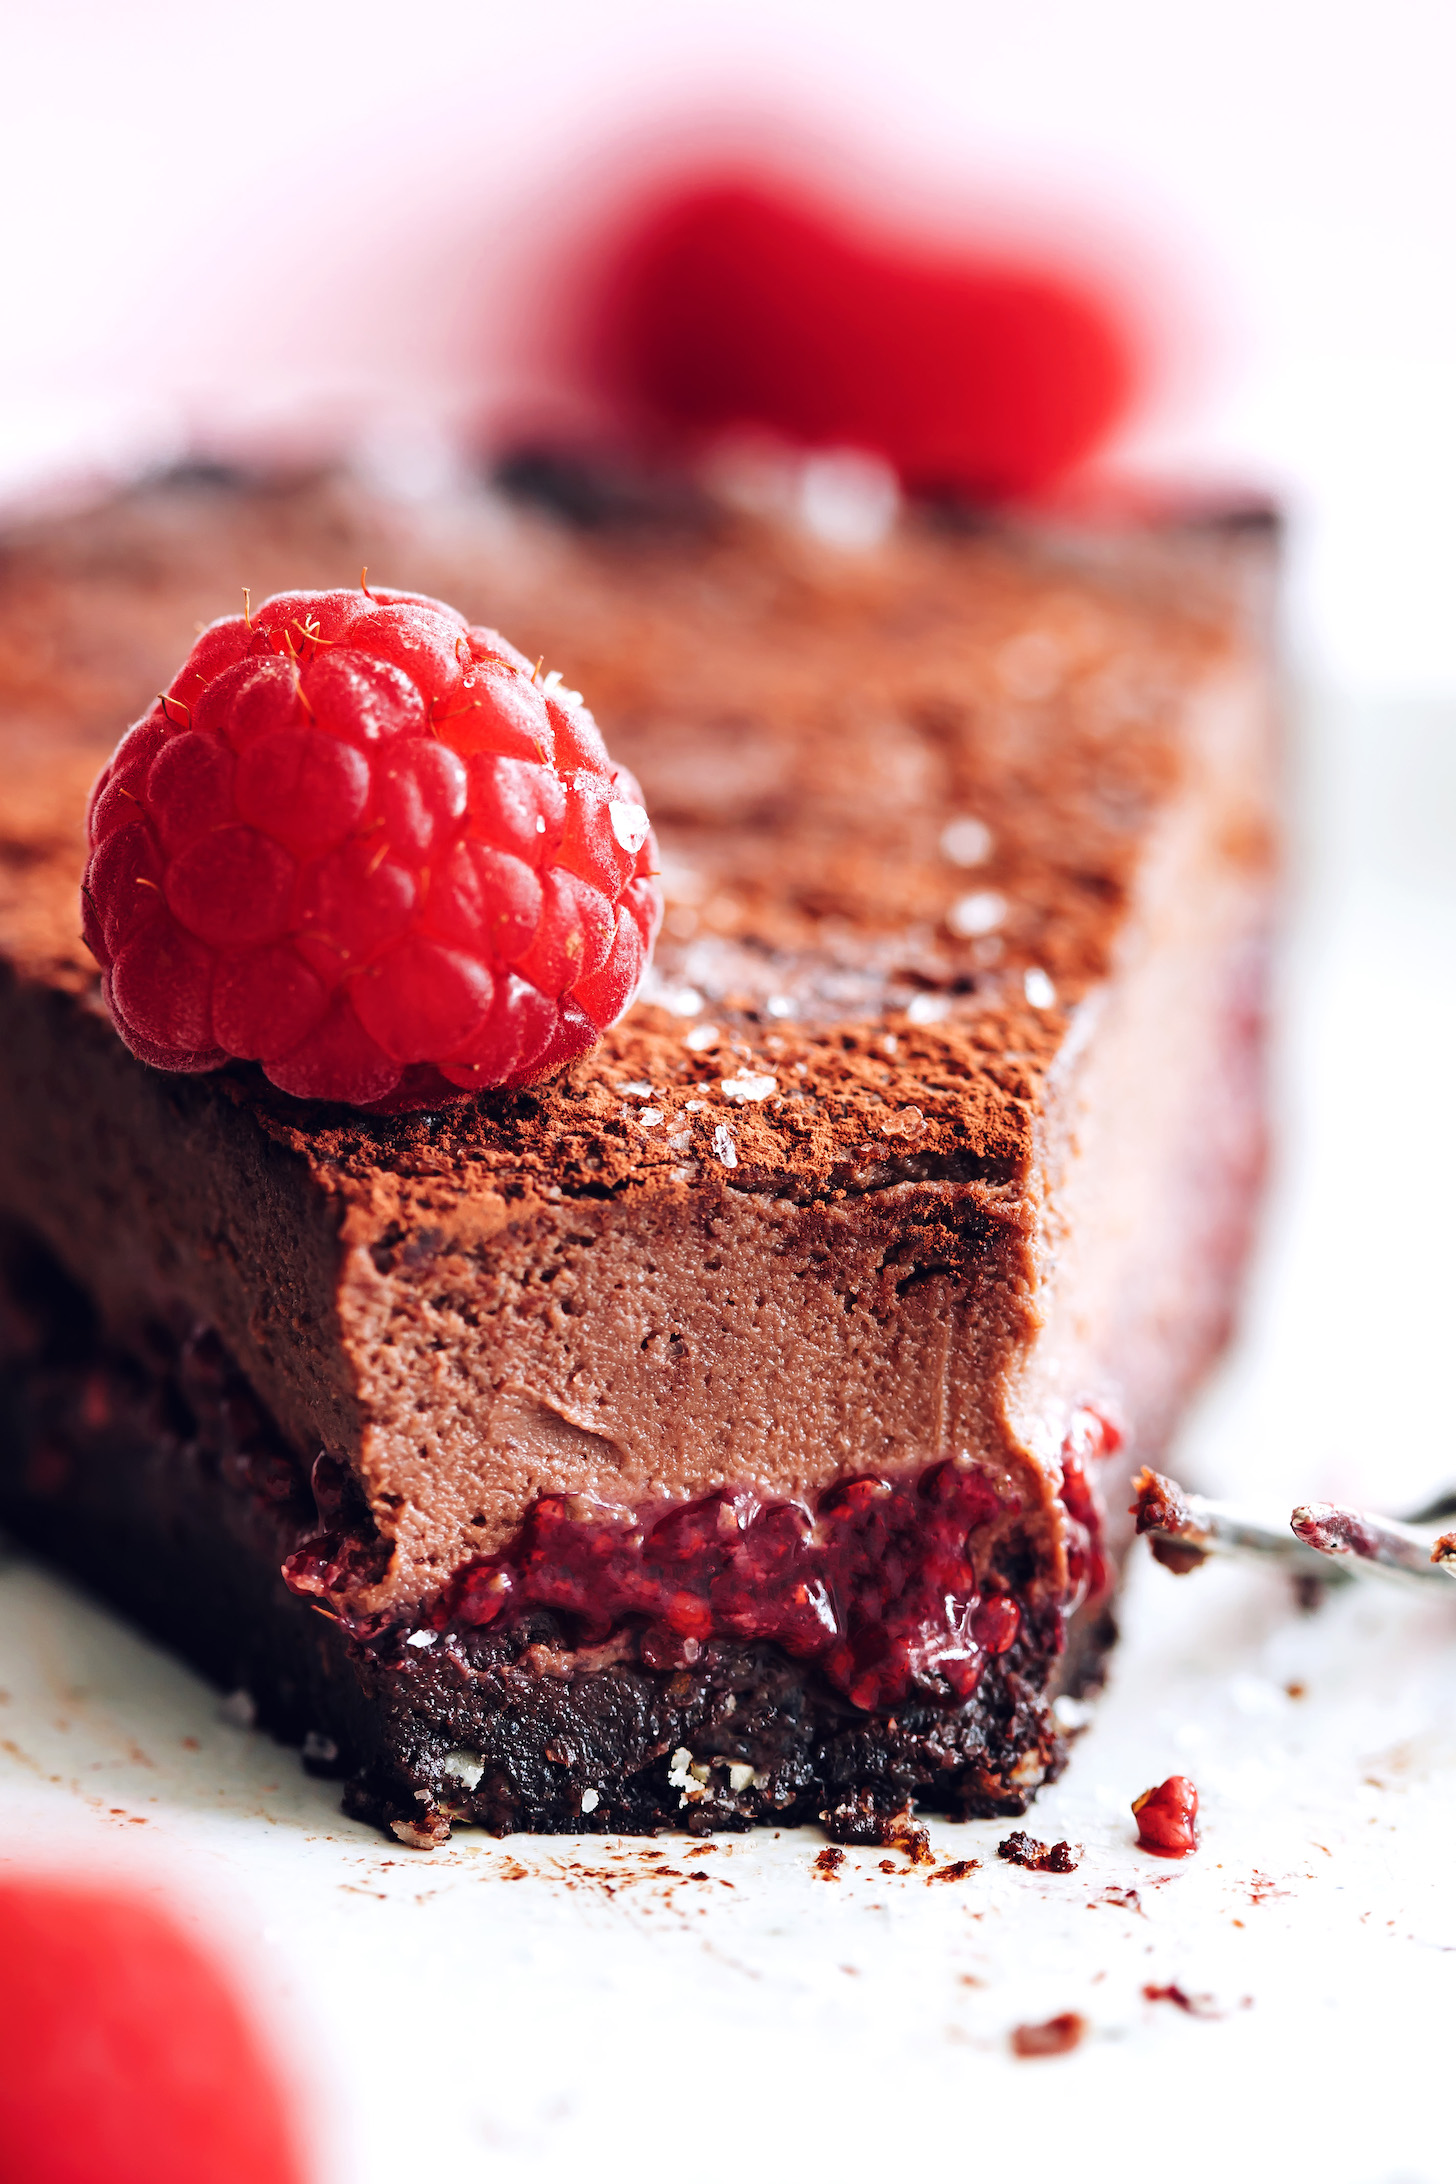 Slice of our vegan chocolate ganache tart topped with a fresh raspberry